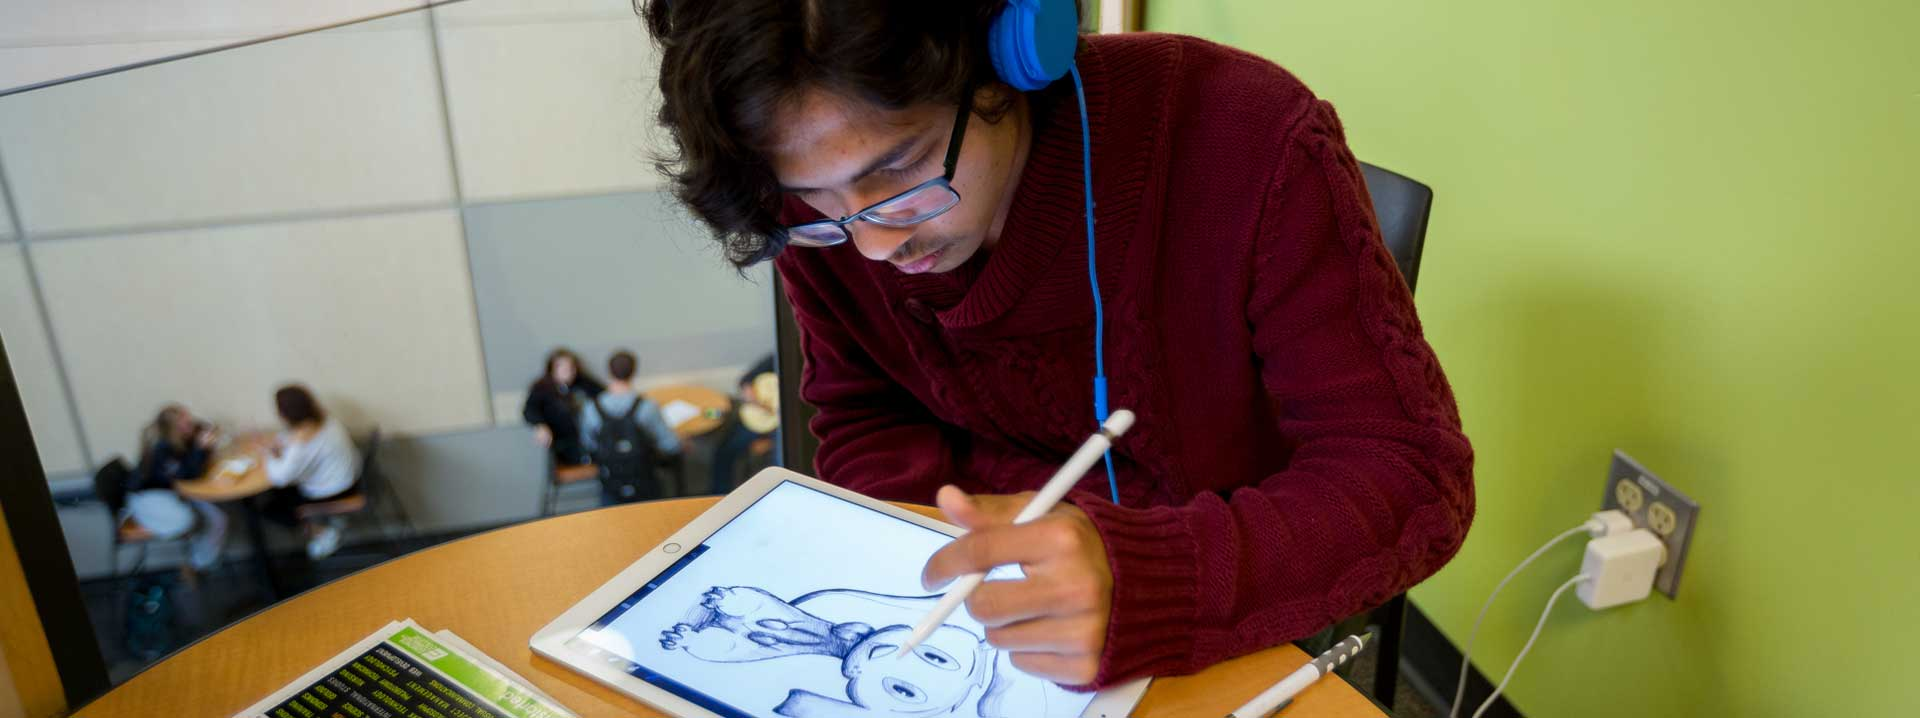 Student drawing on a tablet